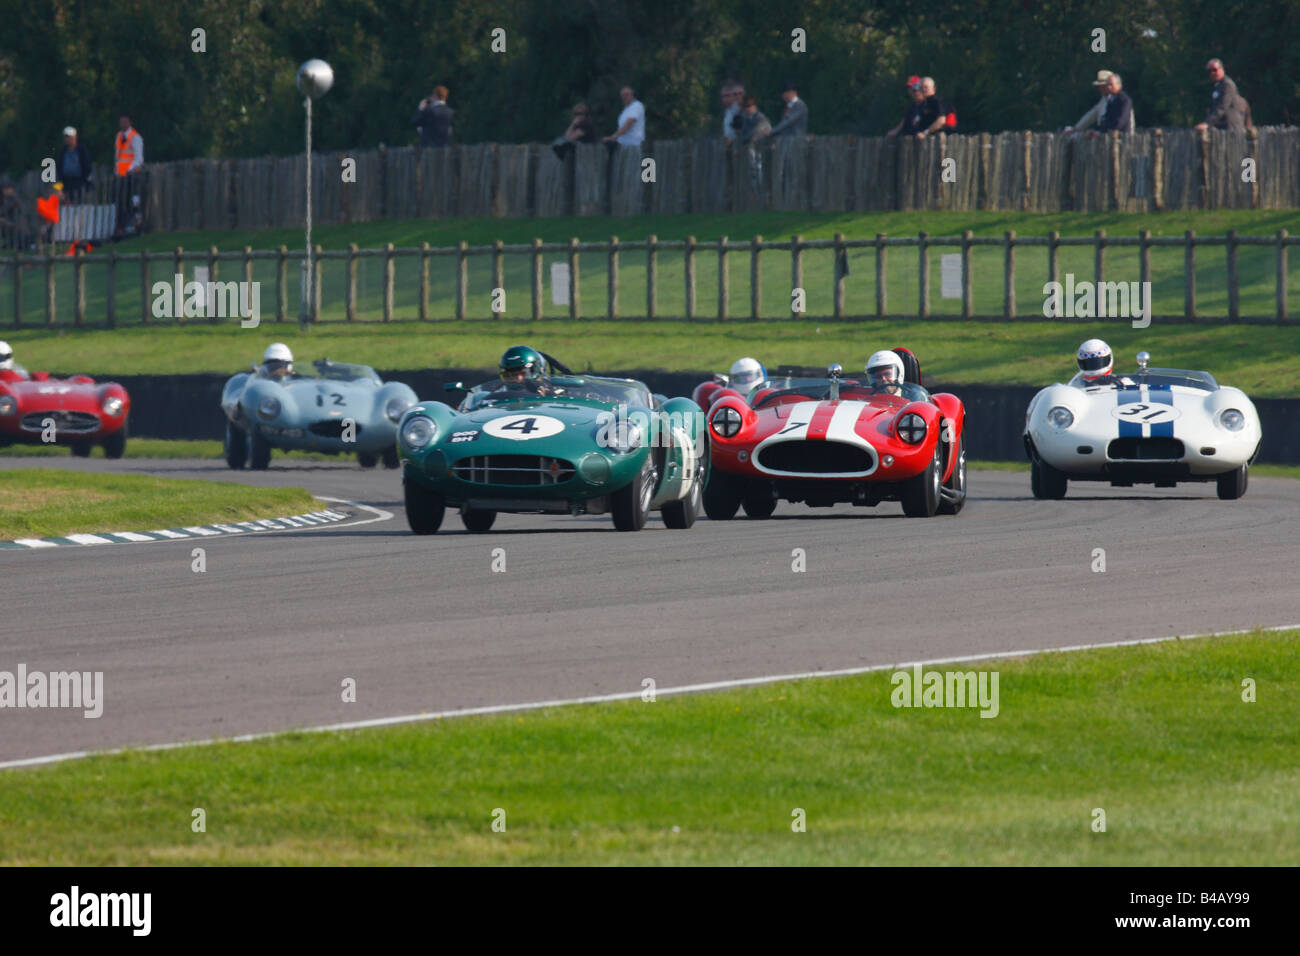 Classic sports cars racing at the 2008 Goodwood Revival meeting Stock Photo